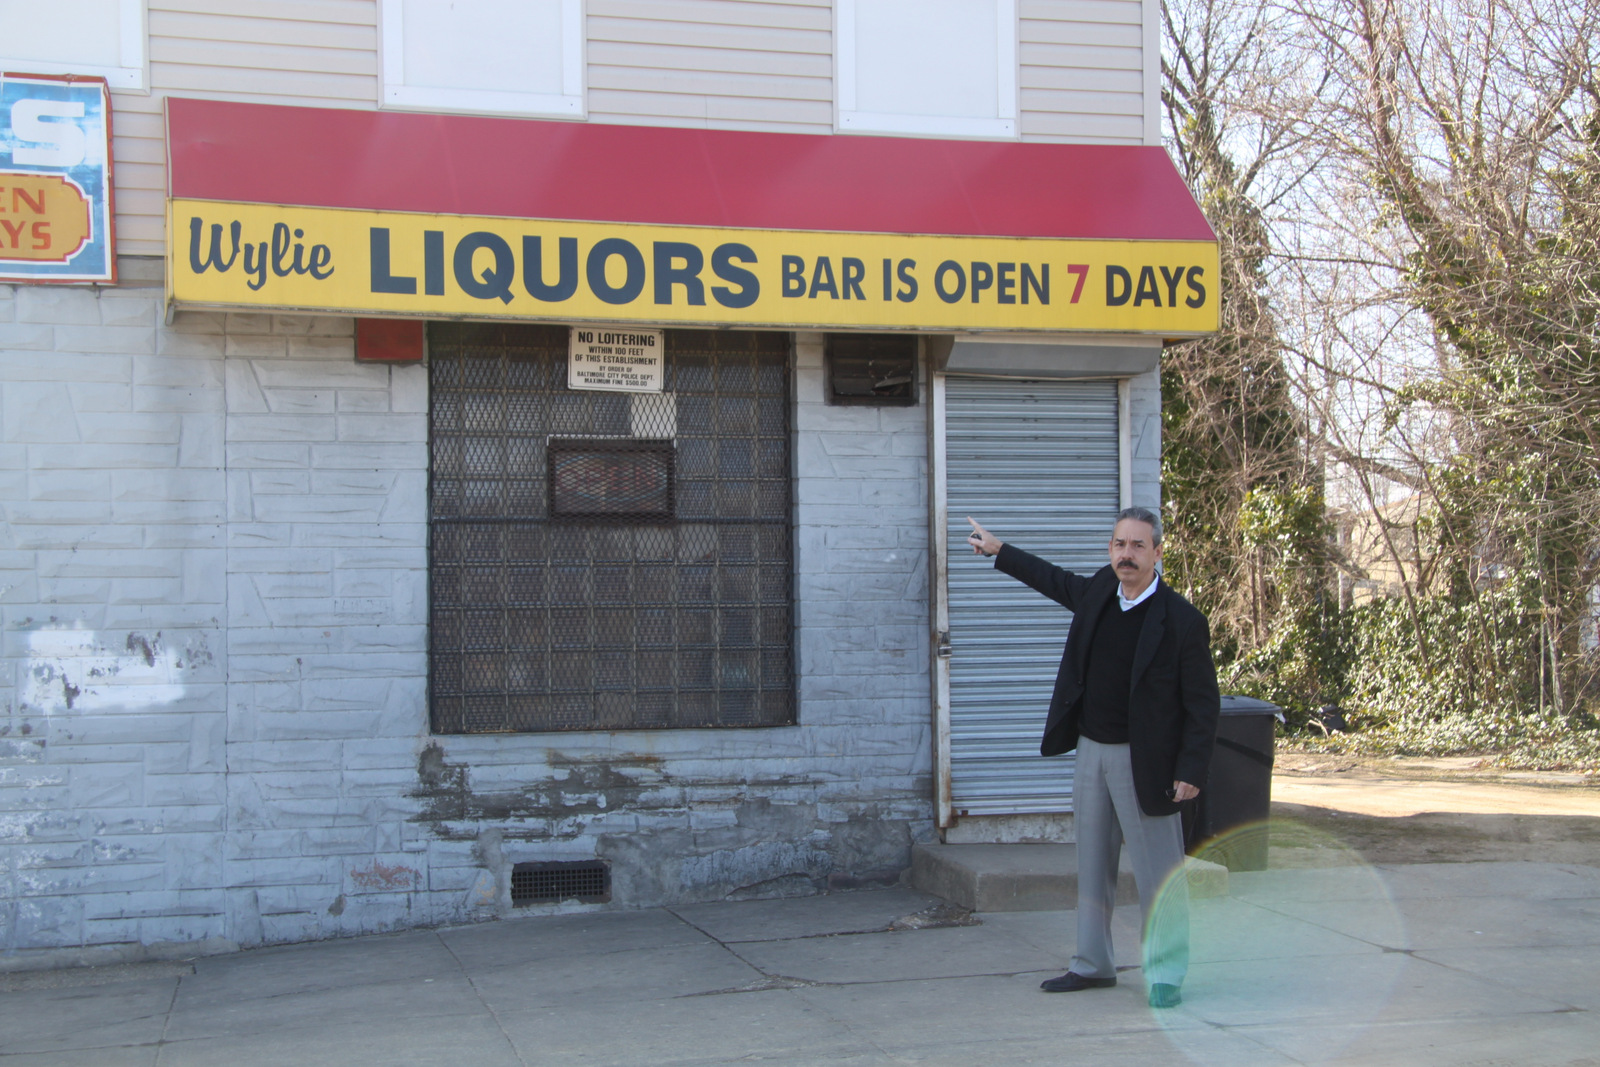 Park Heights Renaisssance CEO Julius Colon, shown here at a store on Wylie Ave,, , supports the crackdown on  liquor outlets in residential areas. (Photo by Fern Shen)